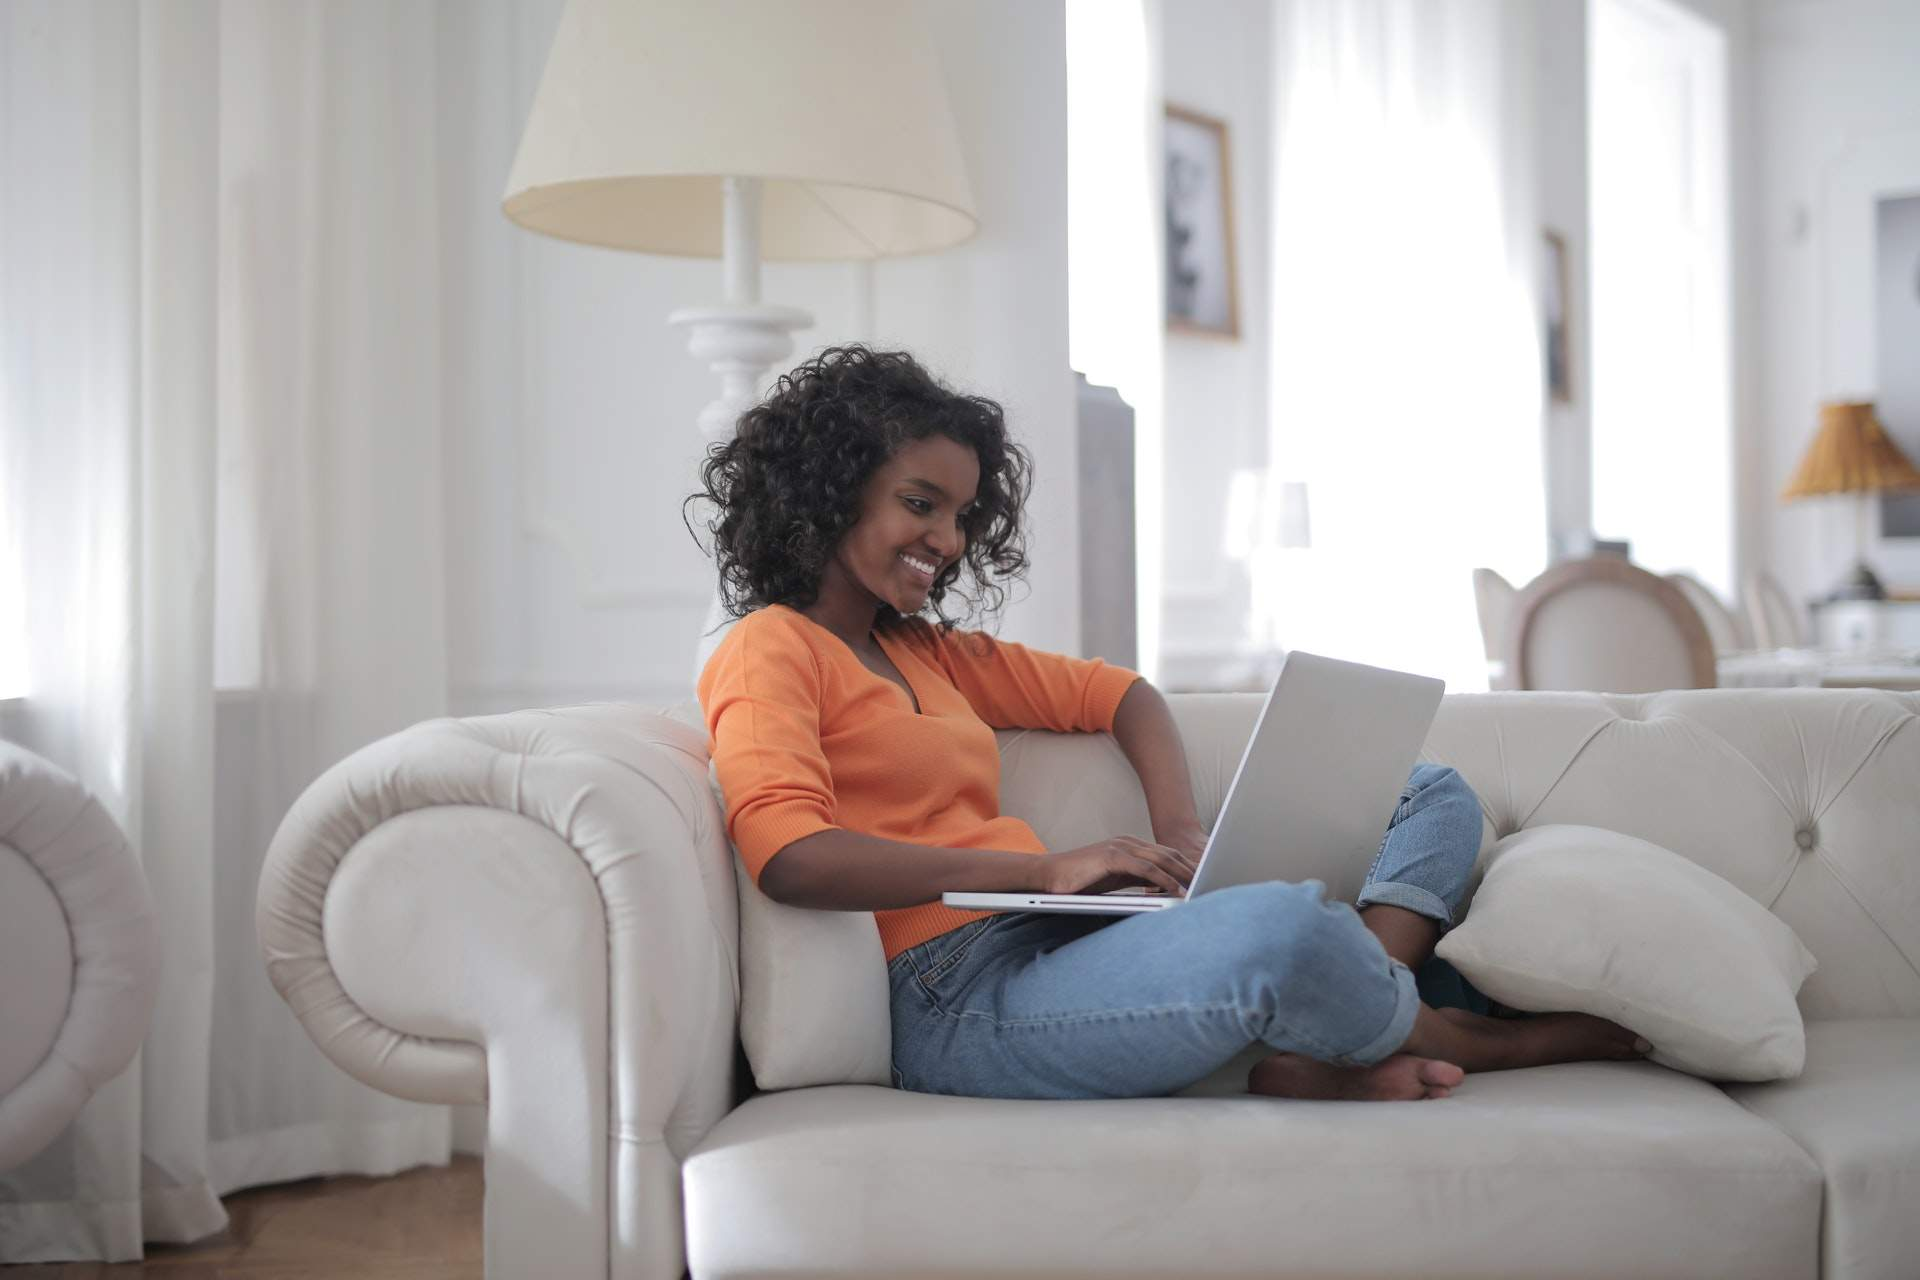 Woman sitting on a white couch while using a laptop